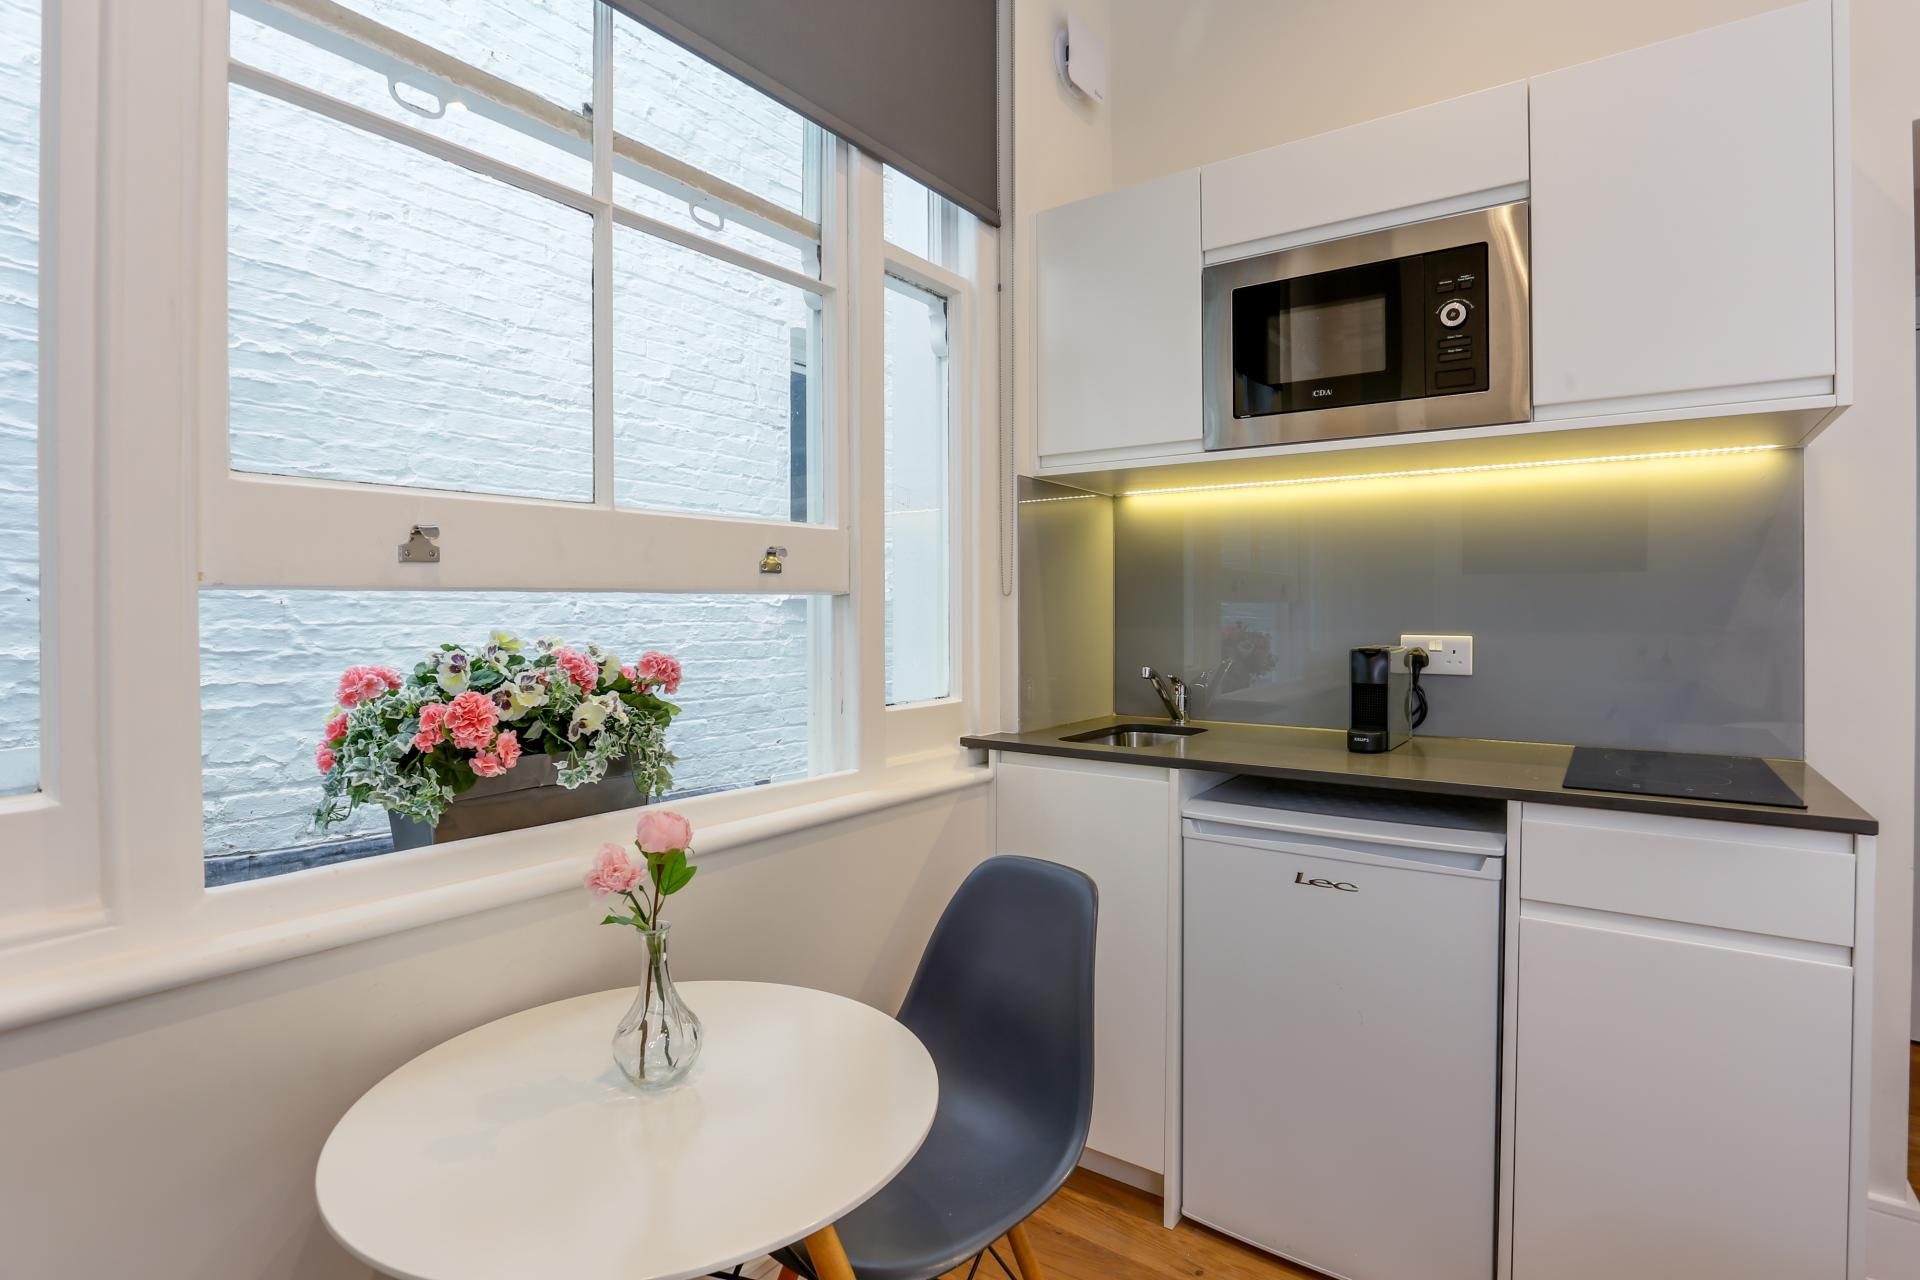 Microwave at Queensborough Terrace, Bayswater, London